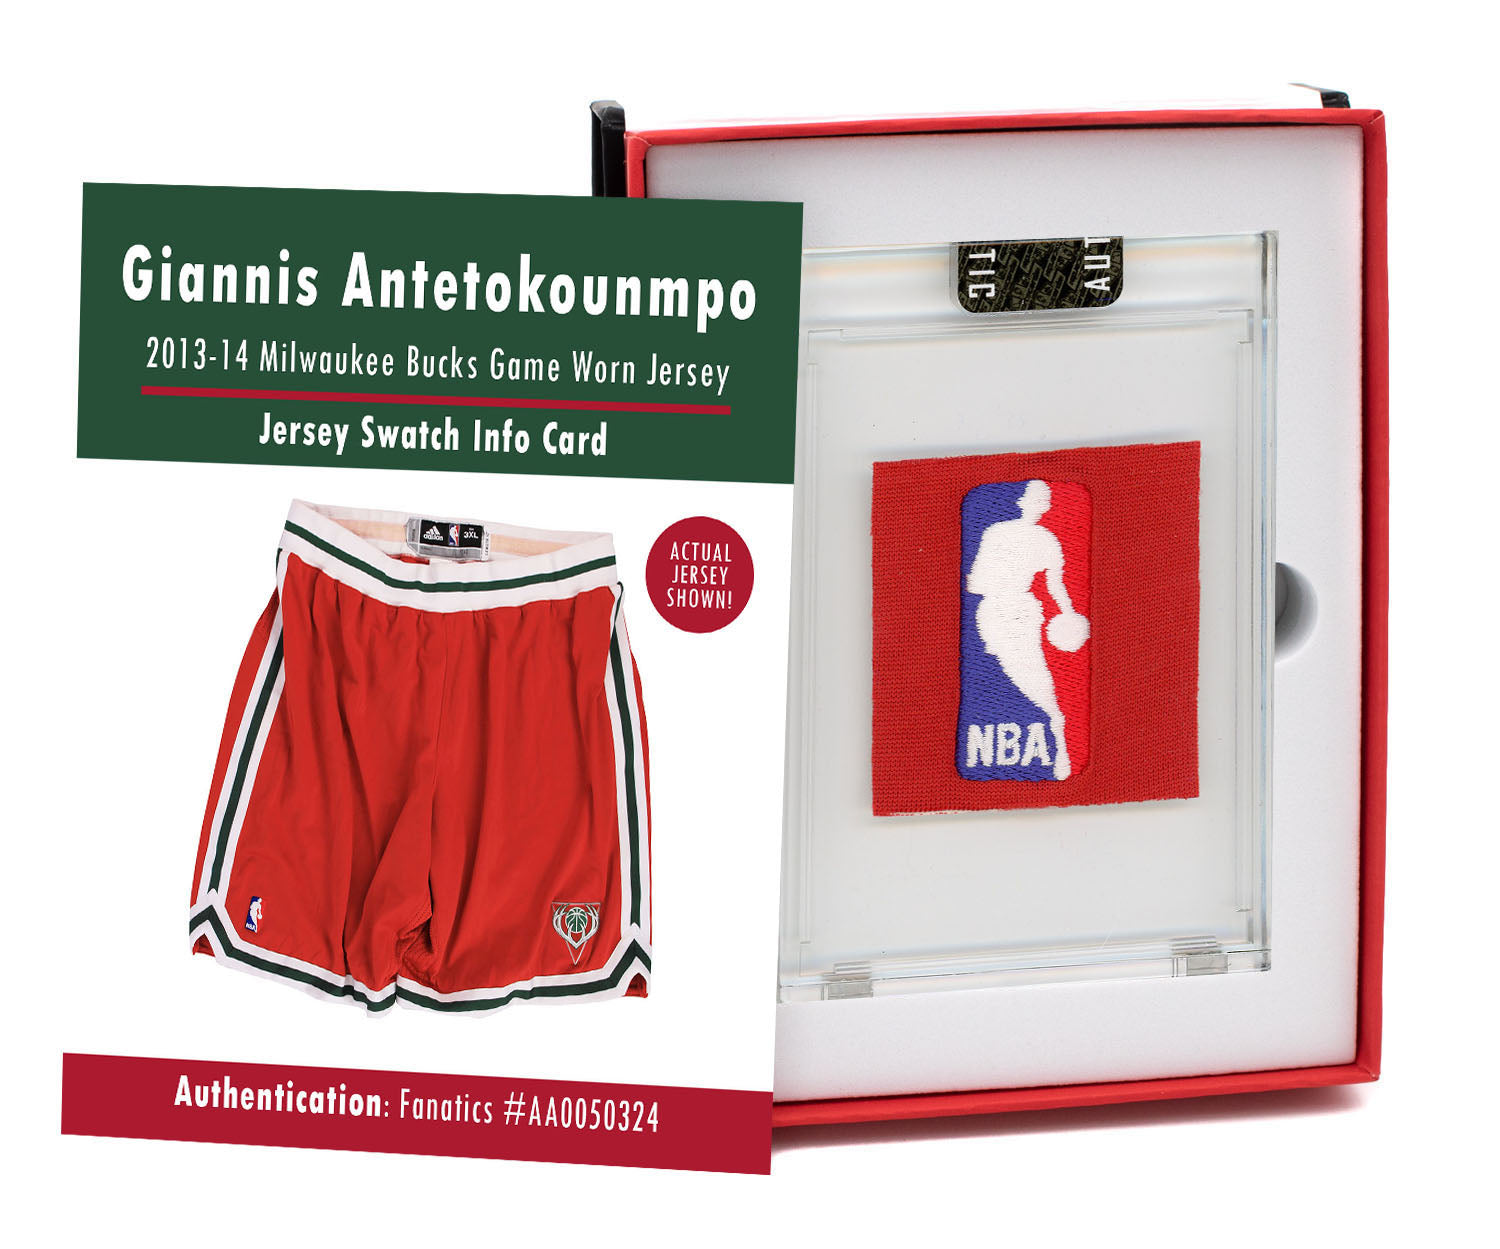 Giannis Antetokounmpo 2013-14 Bucks Game Worn Shirts Mystery Swatch Box